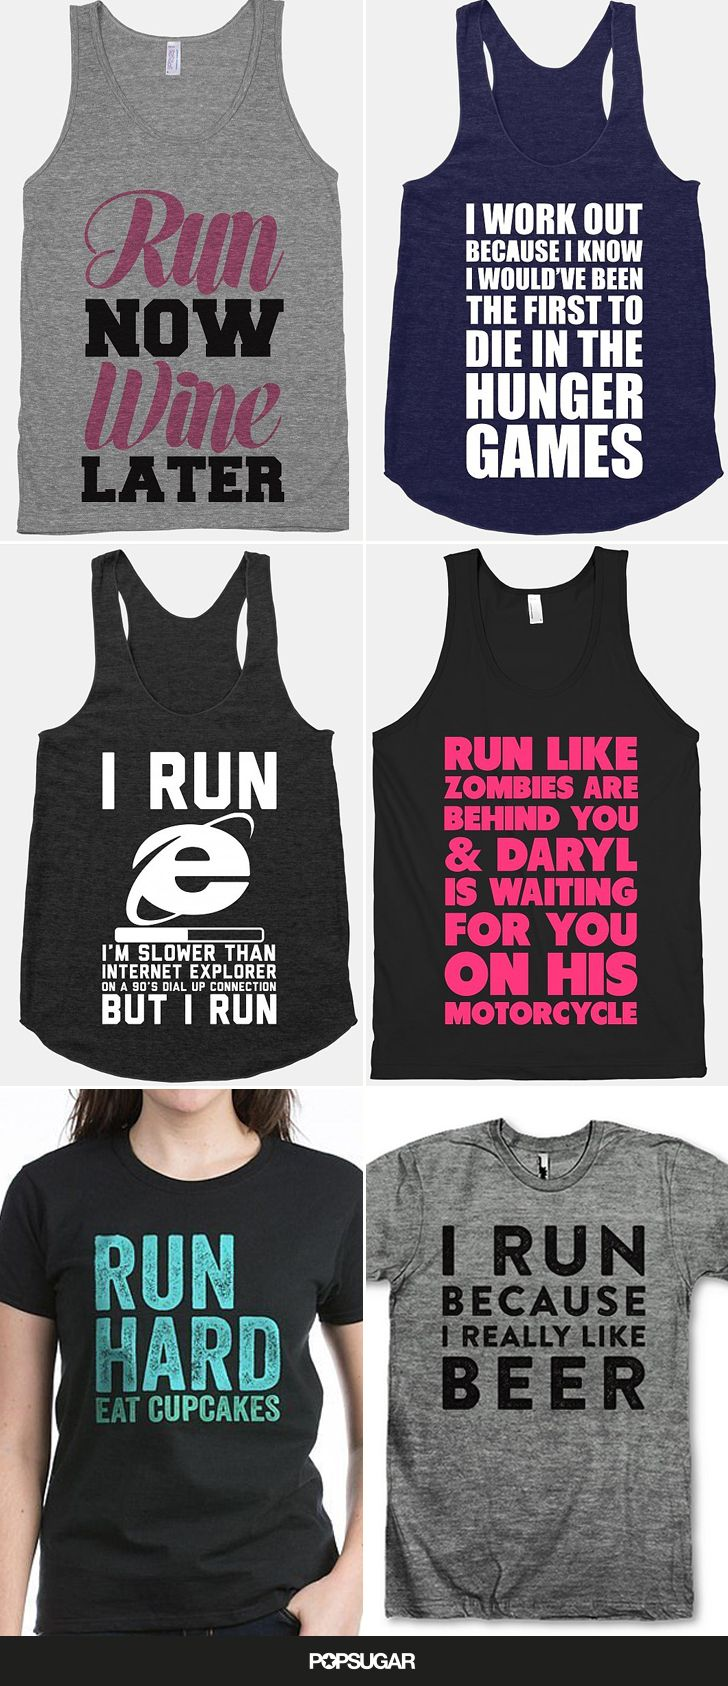 These supercute tees are mind readers — run now, wine later, right? Treat yourself with one of these graphic workout shirts, and you'll be motivated to hit the pavement or show it off at the gym.